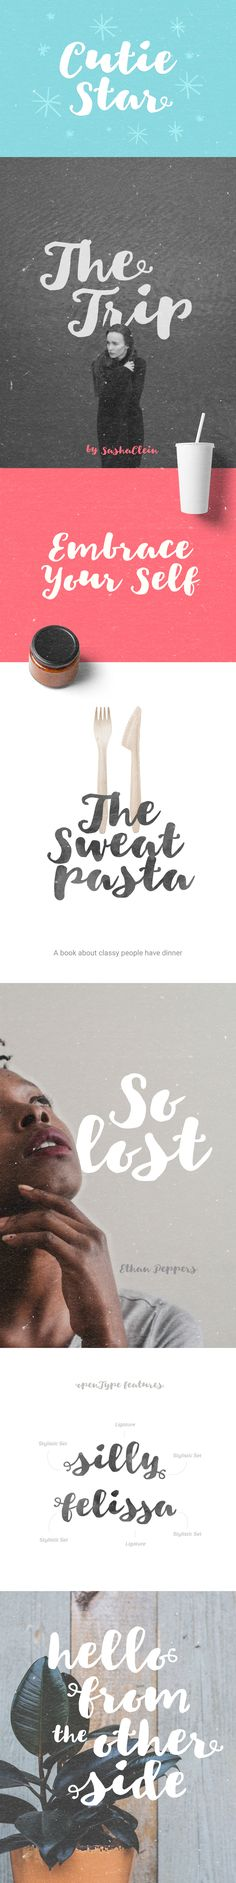 Cutie Star Free Font is a modern brush script typeface with irregular baseline and natural hand written shapes. Drawn with regular brush pen and optimized to look like hand lettered brush.This free font could be great for wedding invitation, greeting ca… Script Typeface, Handwritten Fonts, Wedding Card Quotes, Wedding Cards, Truetype Fonts, Alphabet, Free Fonts Download, Font Free, Free Downloads